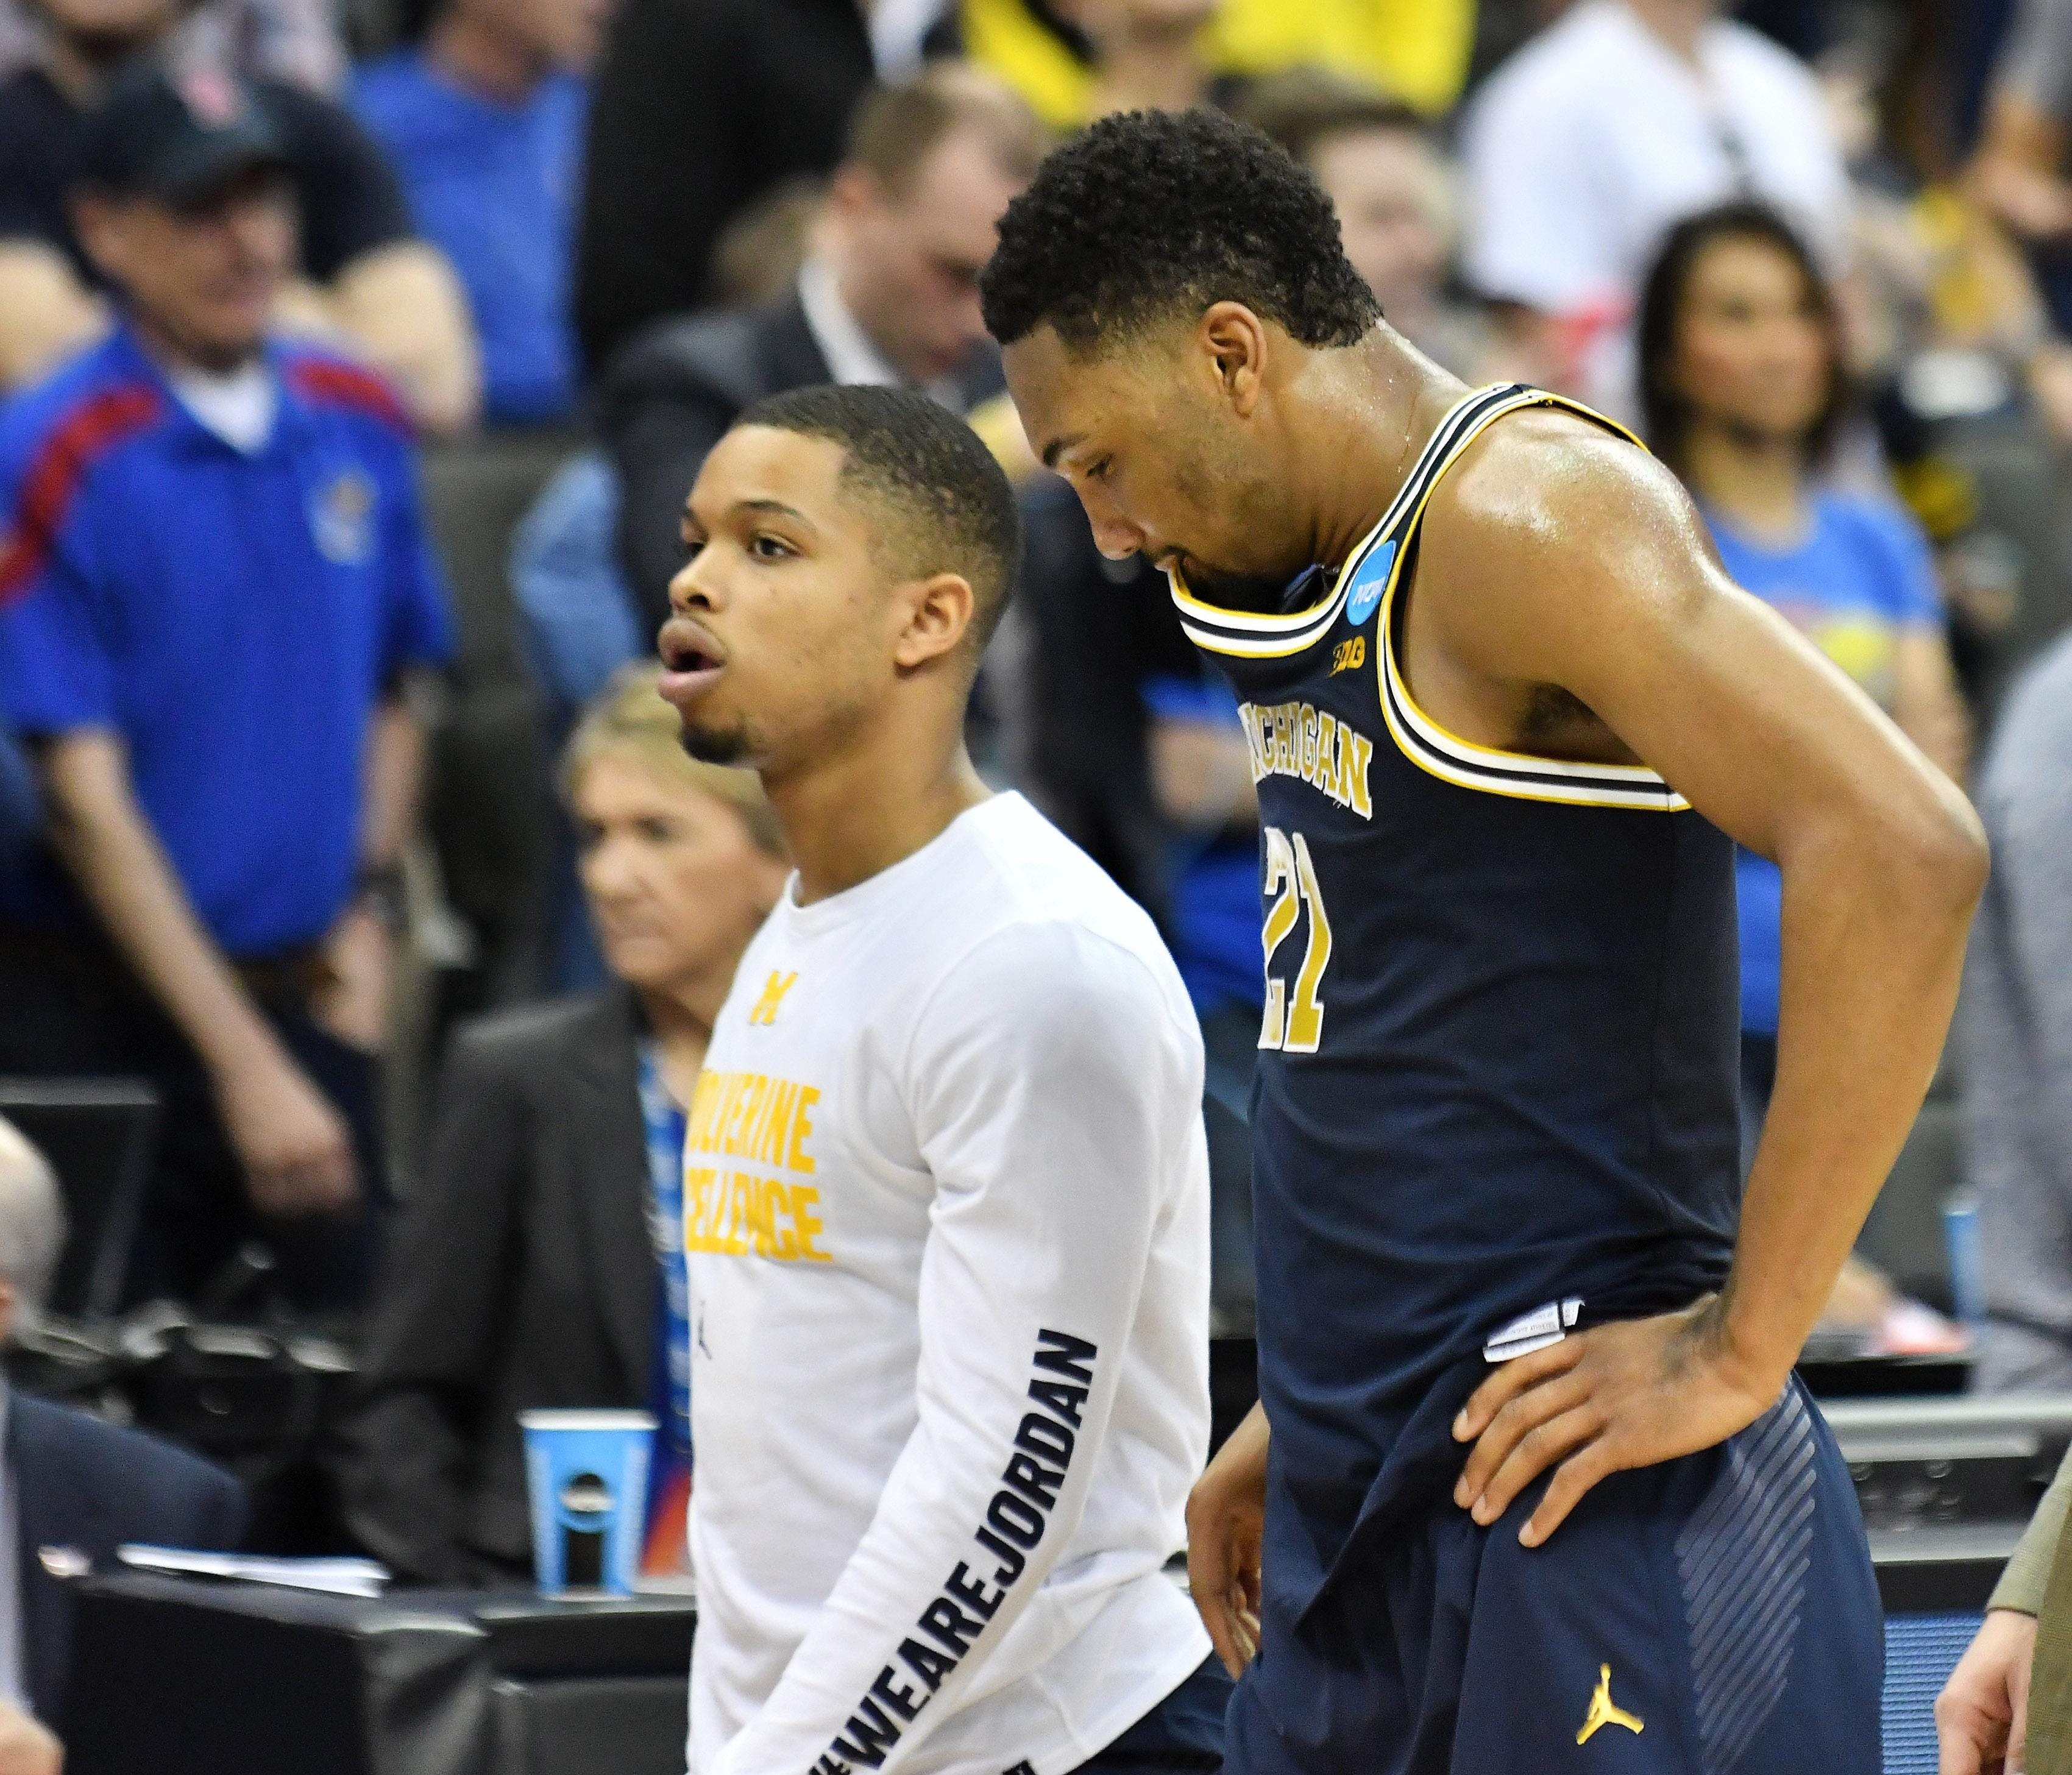 Wojo: Sudden defeat hard to swallow for Wolverines